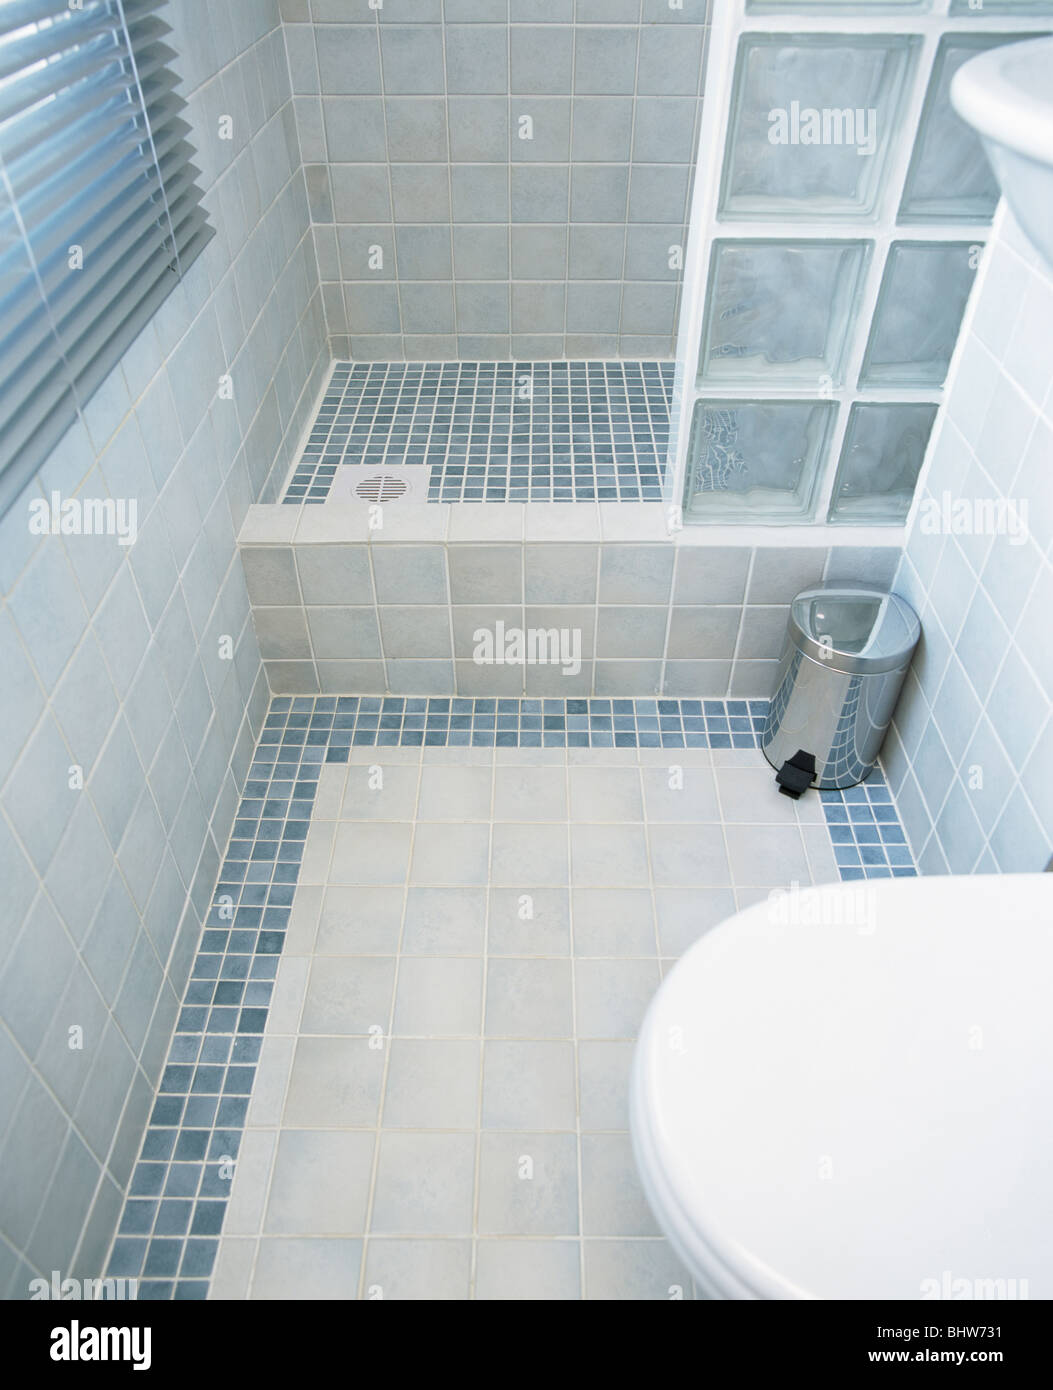 Tiled Bathroom Glass Brick Wall Stock Photos & Tiled Bathroom Glass ...